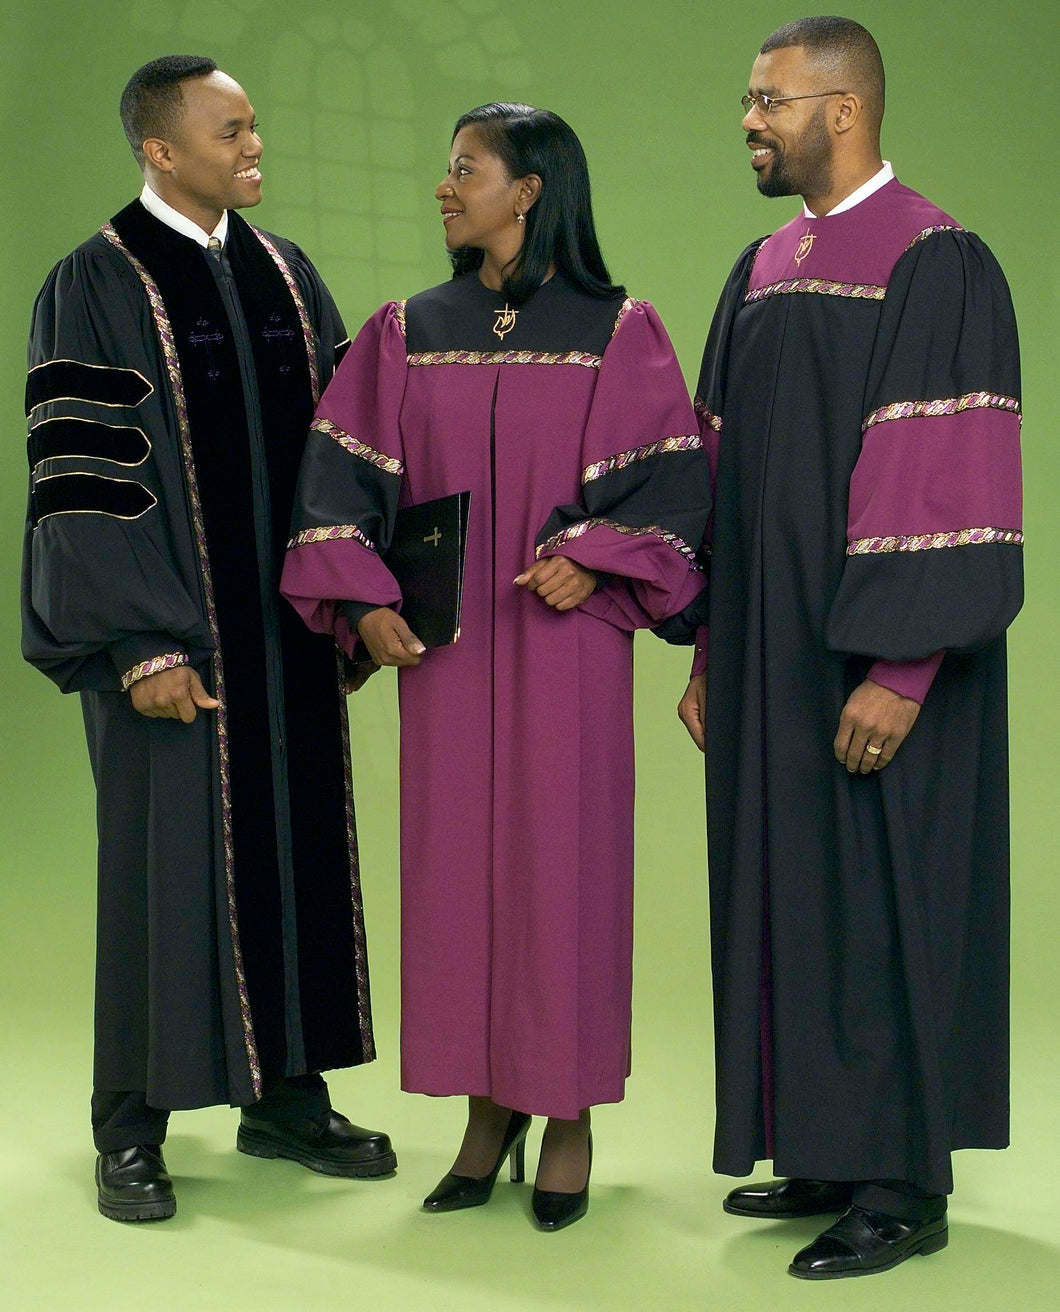 4434T 6508T Gospel Choir Robes and Clergy Robe